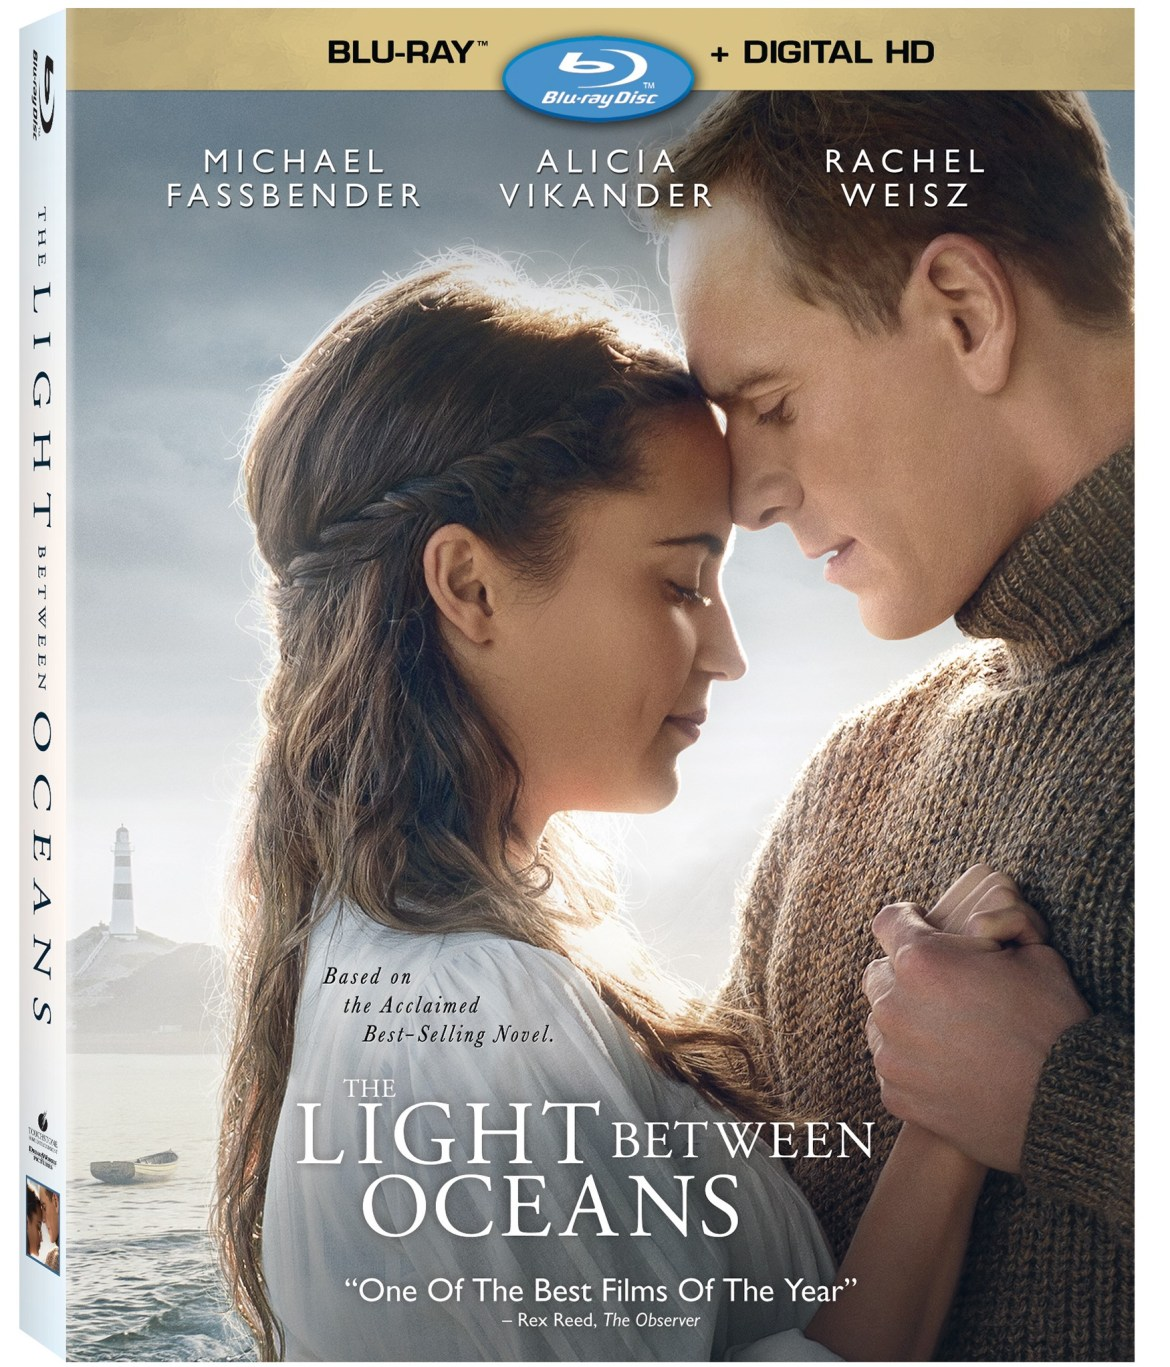 """Disney/Dreamworks Pictures' """"The Light Between Oceans"""" On Digital HD Blu-ray, DVD And On-Demand Jan 24th"""